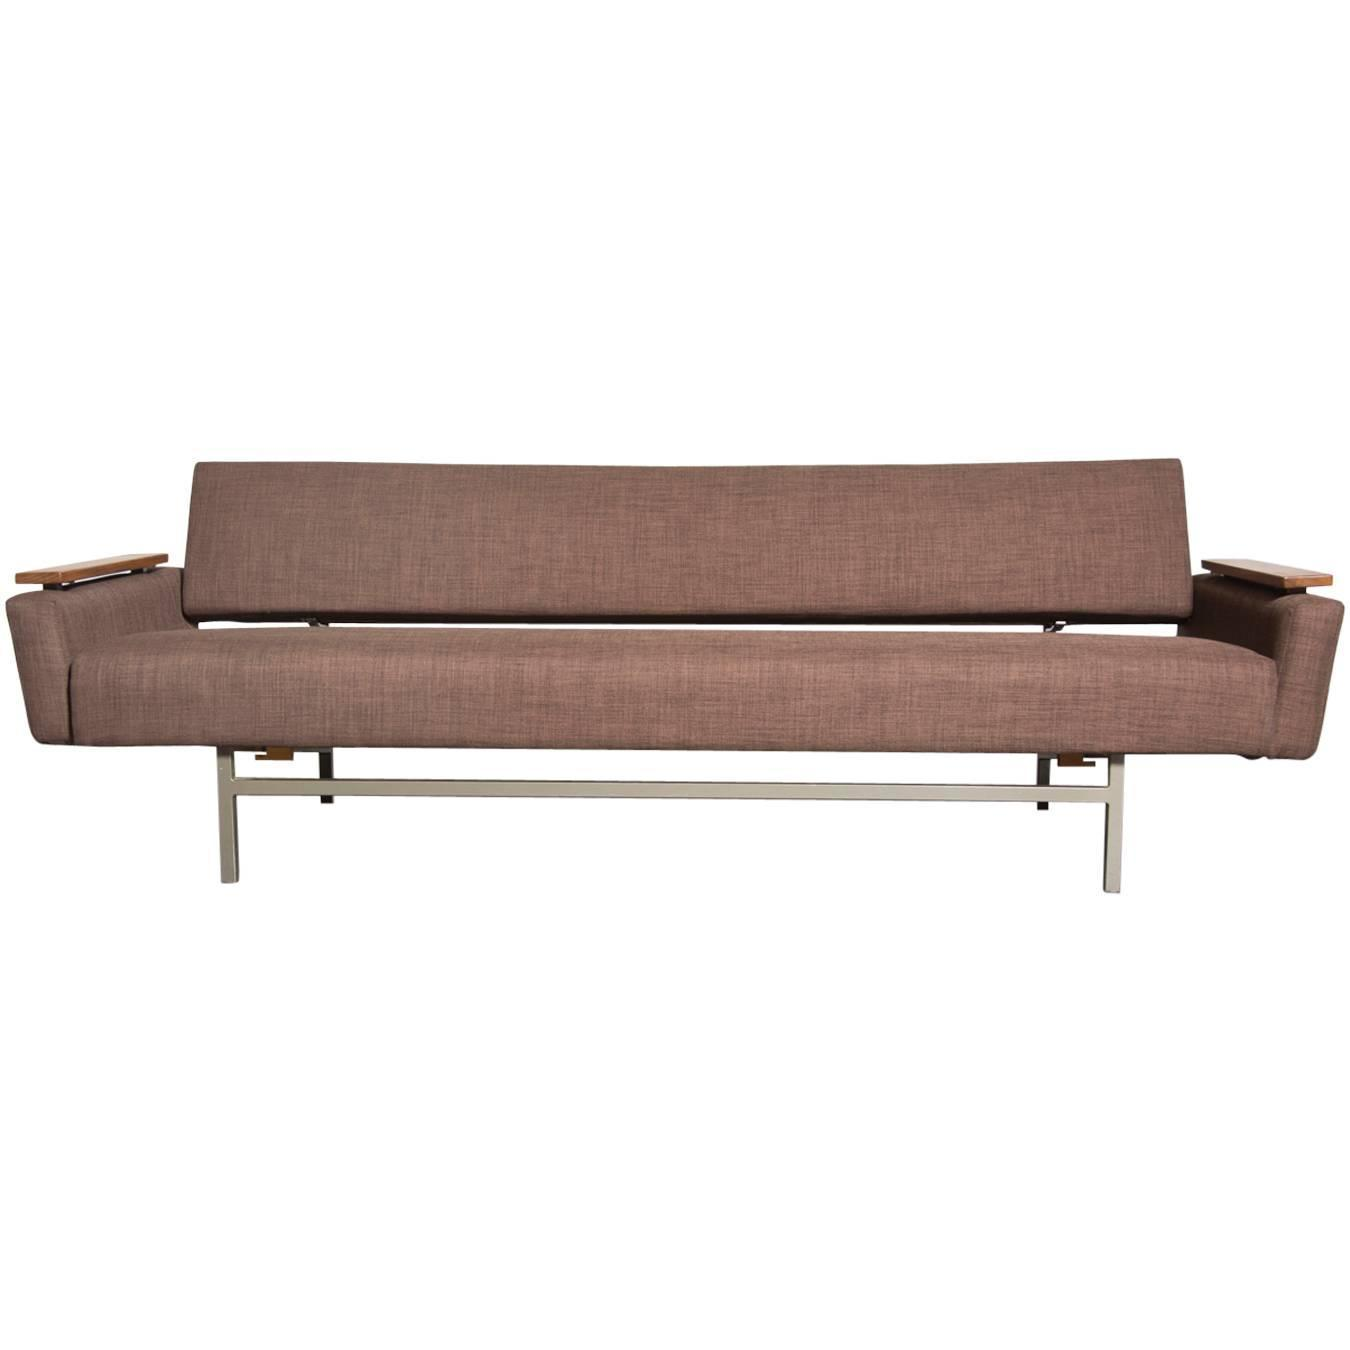 Robert parry midcentury sleeper sofa for sale at 1stdibs